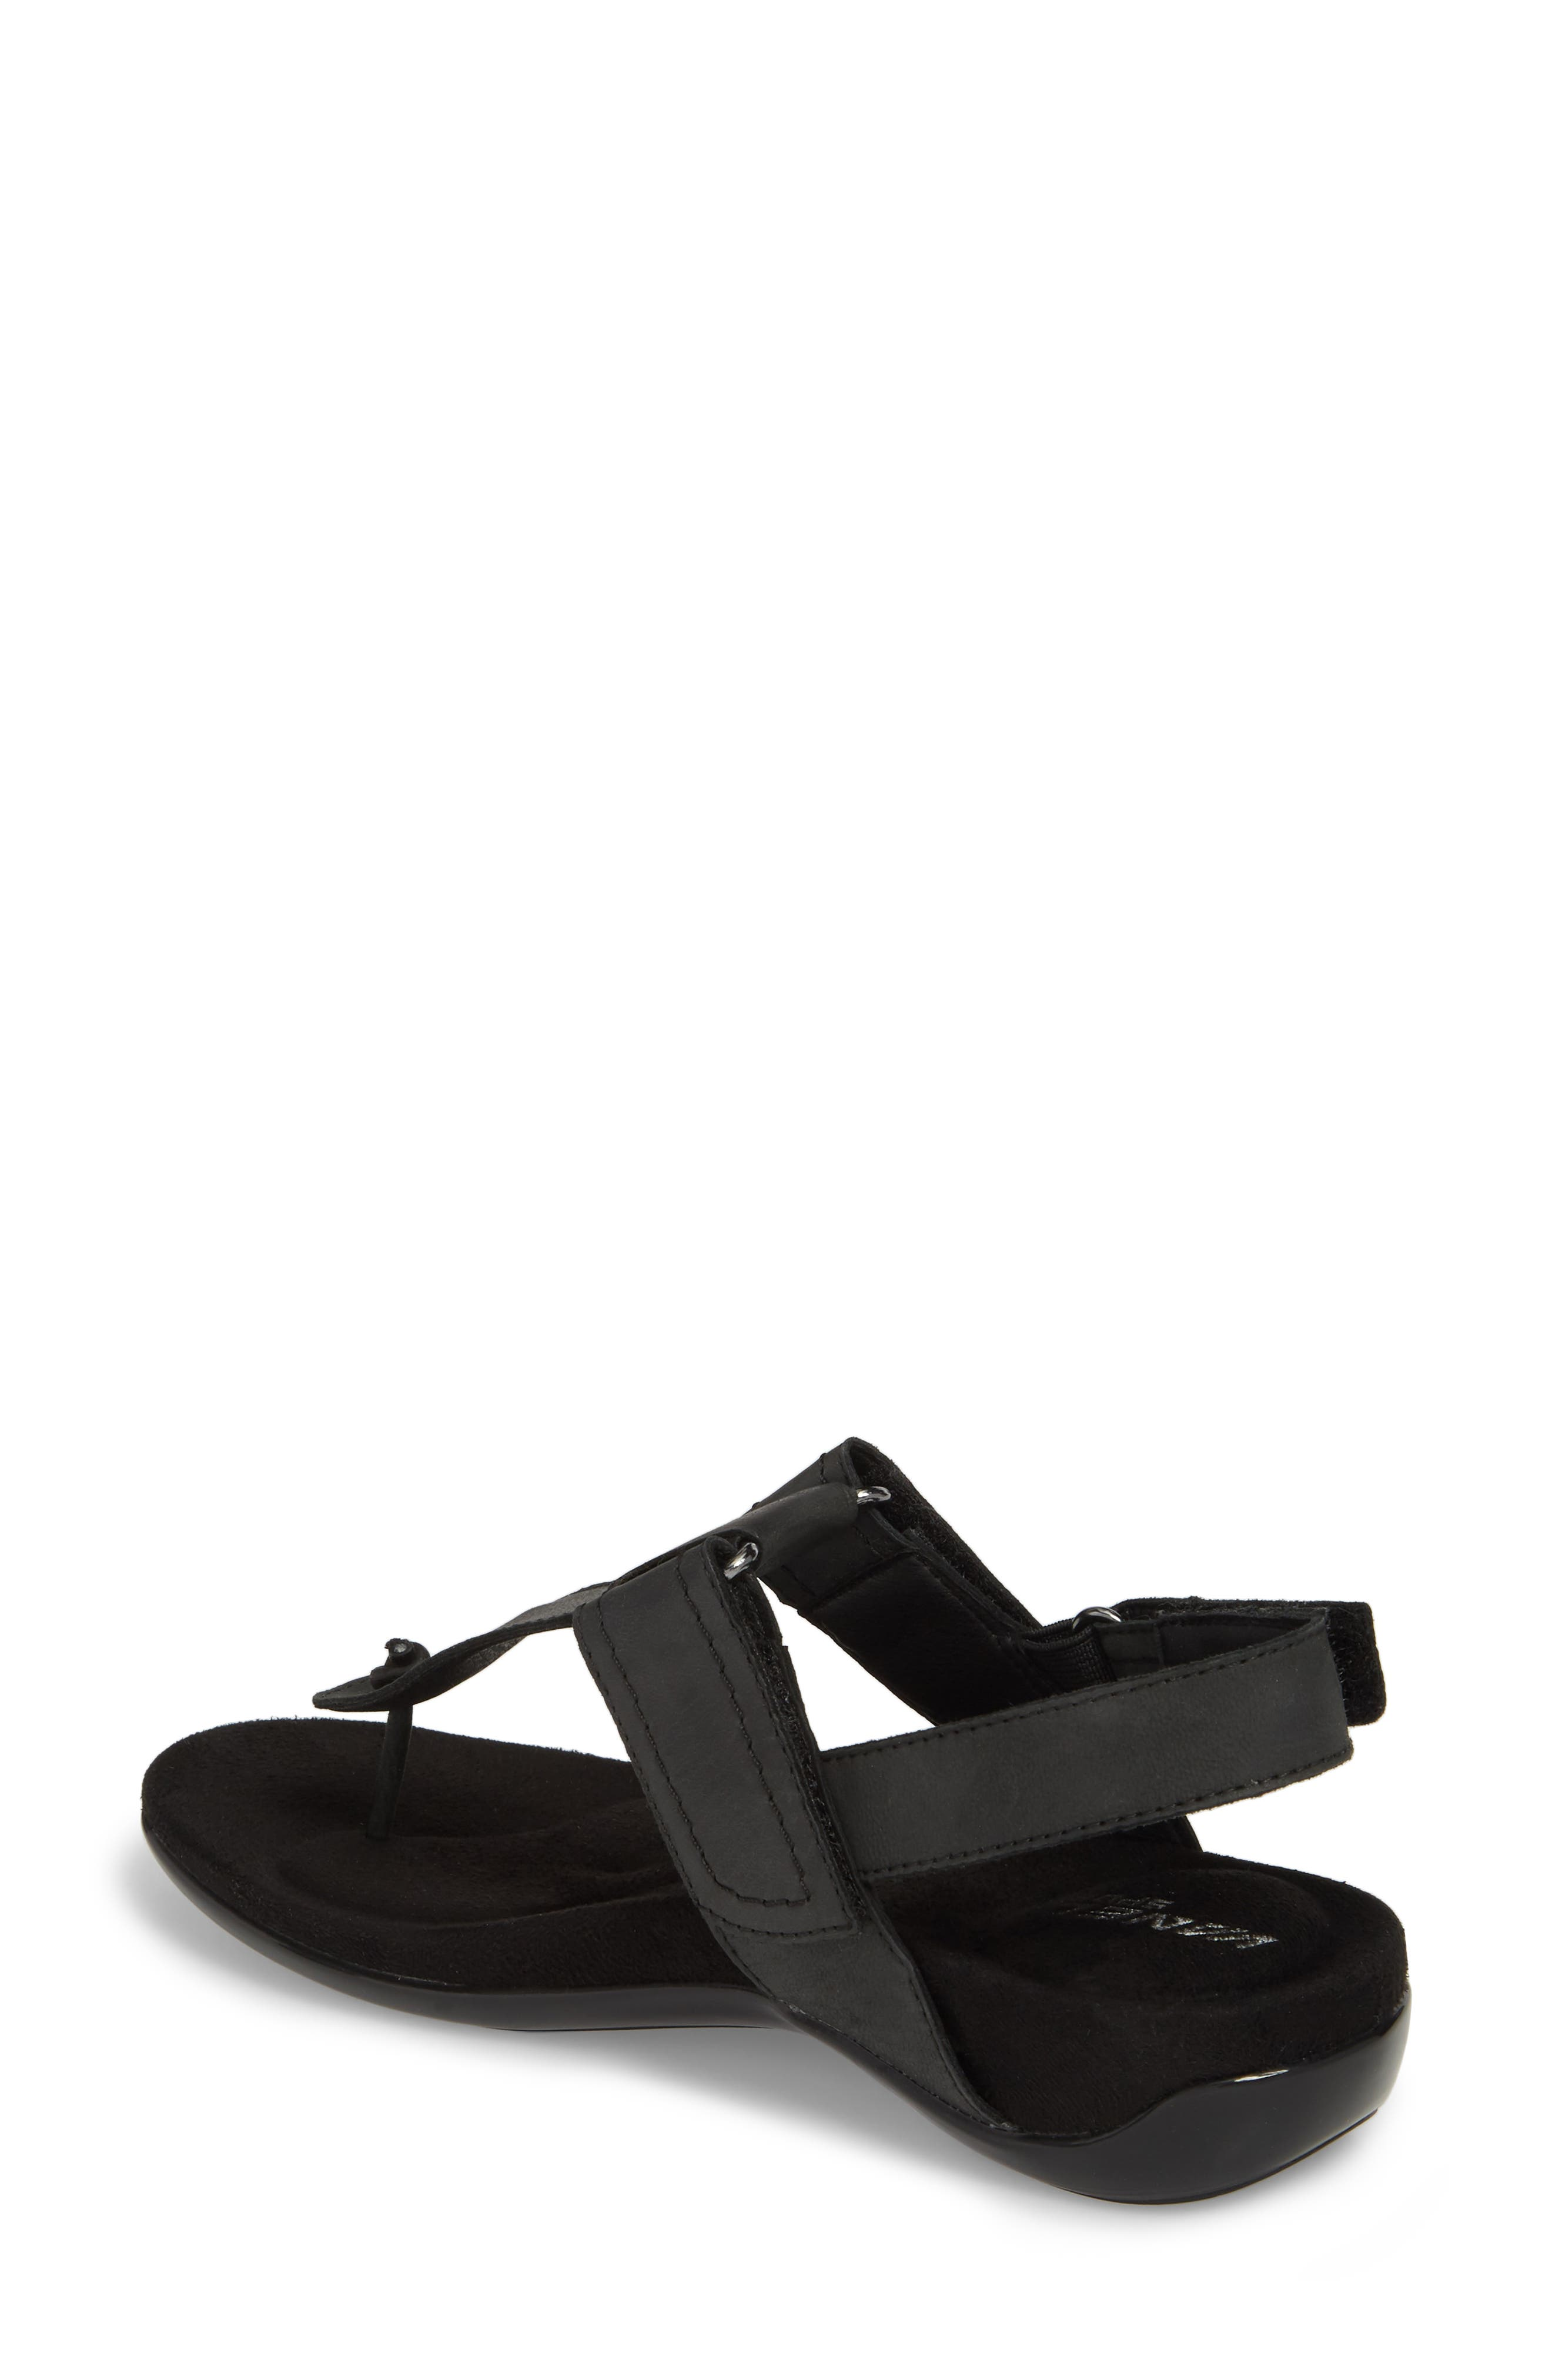 Valley Sandal,                             Alternate thumbnail 2, color,                             Black Leather